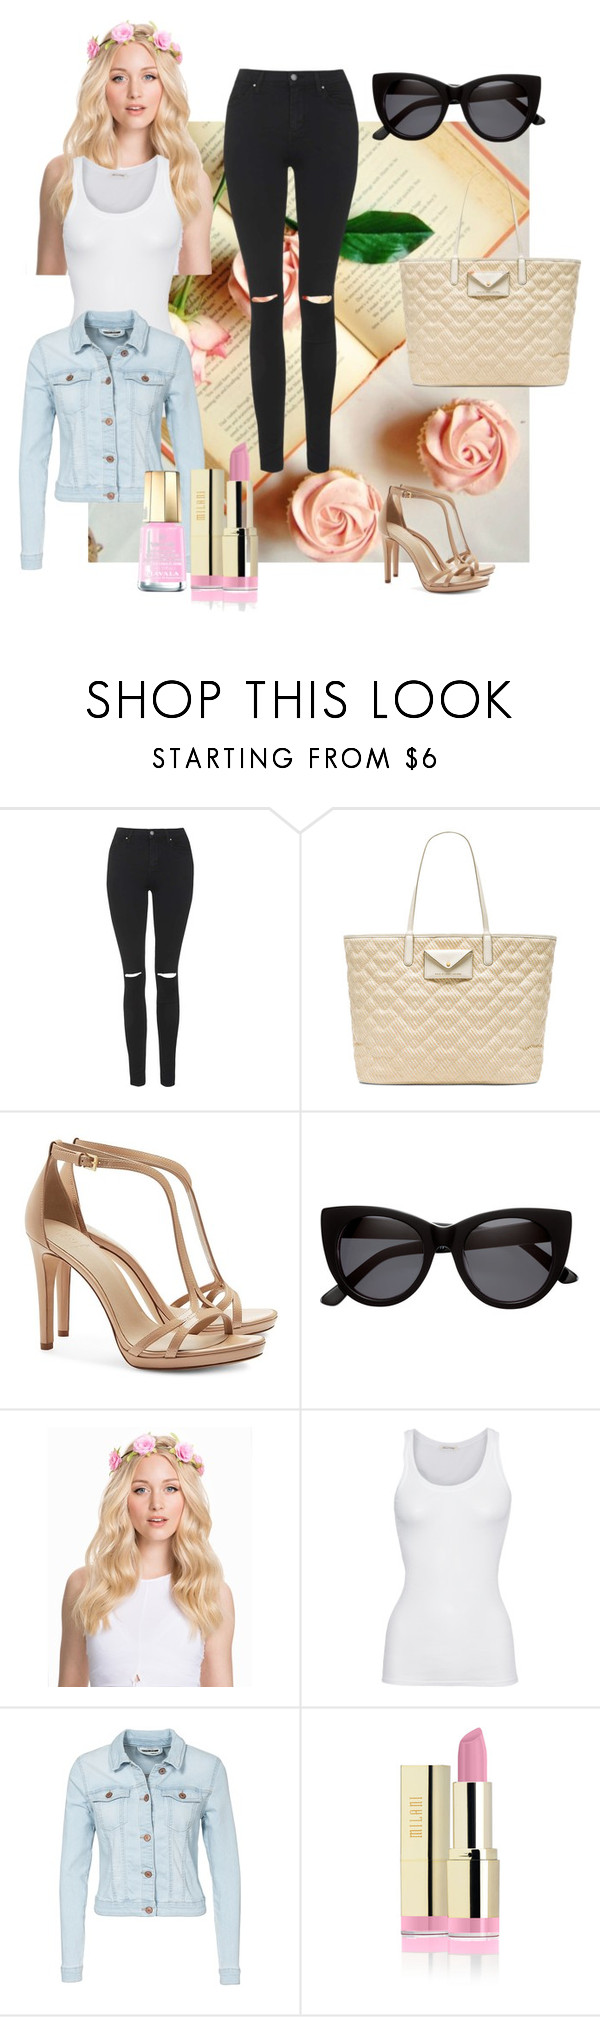 """""""20. Blondes have more fun"""" by kristina-lindstrom ❤ liked on Polyvore featuring Topshop, Marc by Marc Jacobs, Tory Burch, H&M, NLY Accessories, American Vintage, Noisy May and Mavala"""